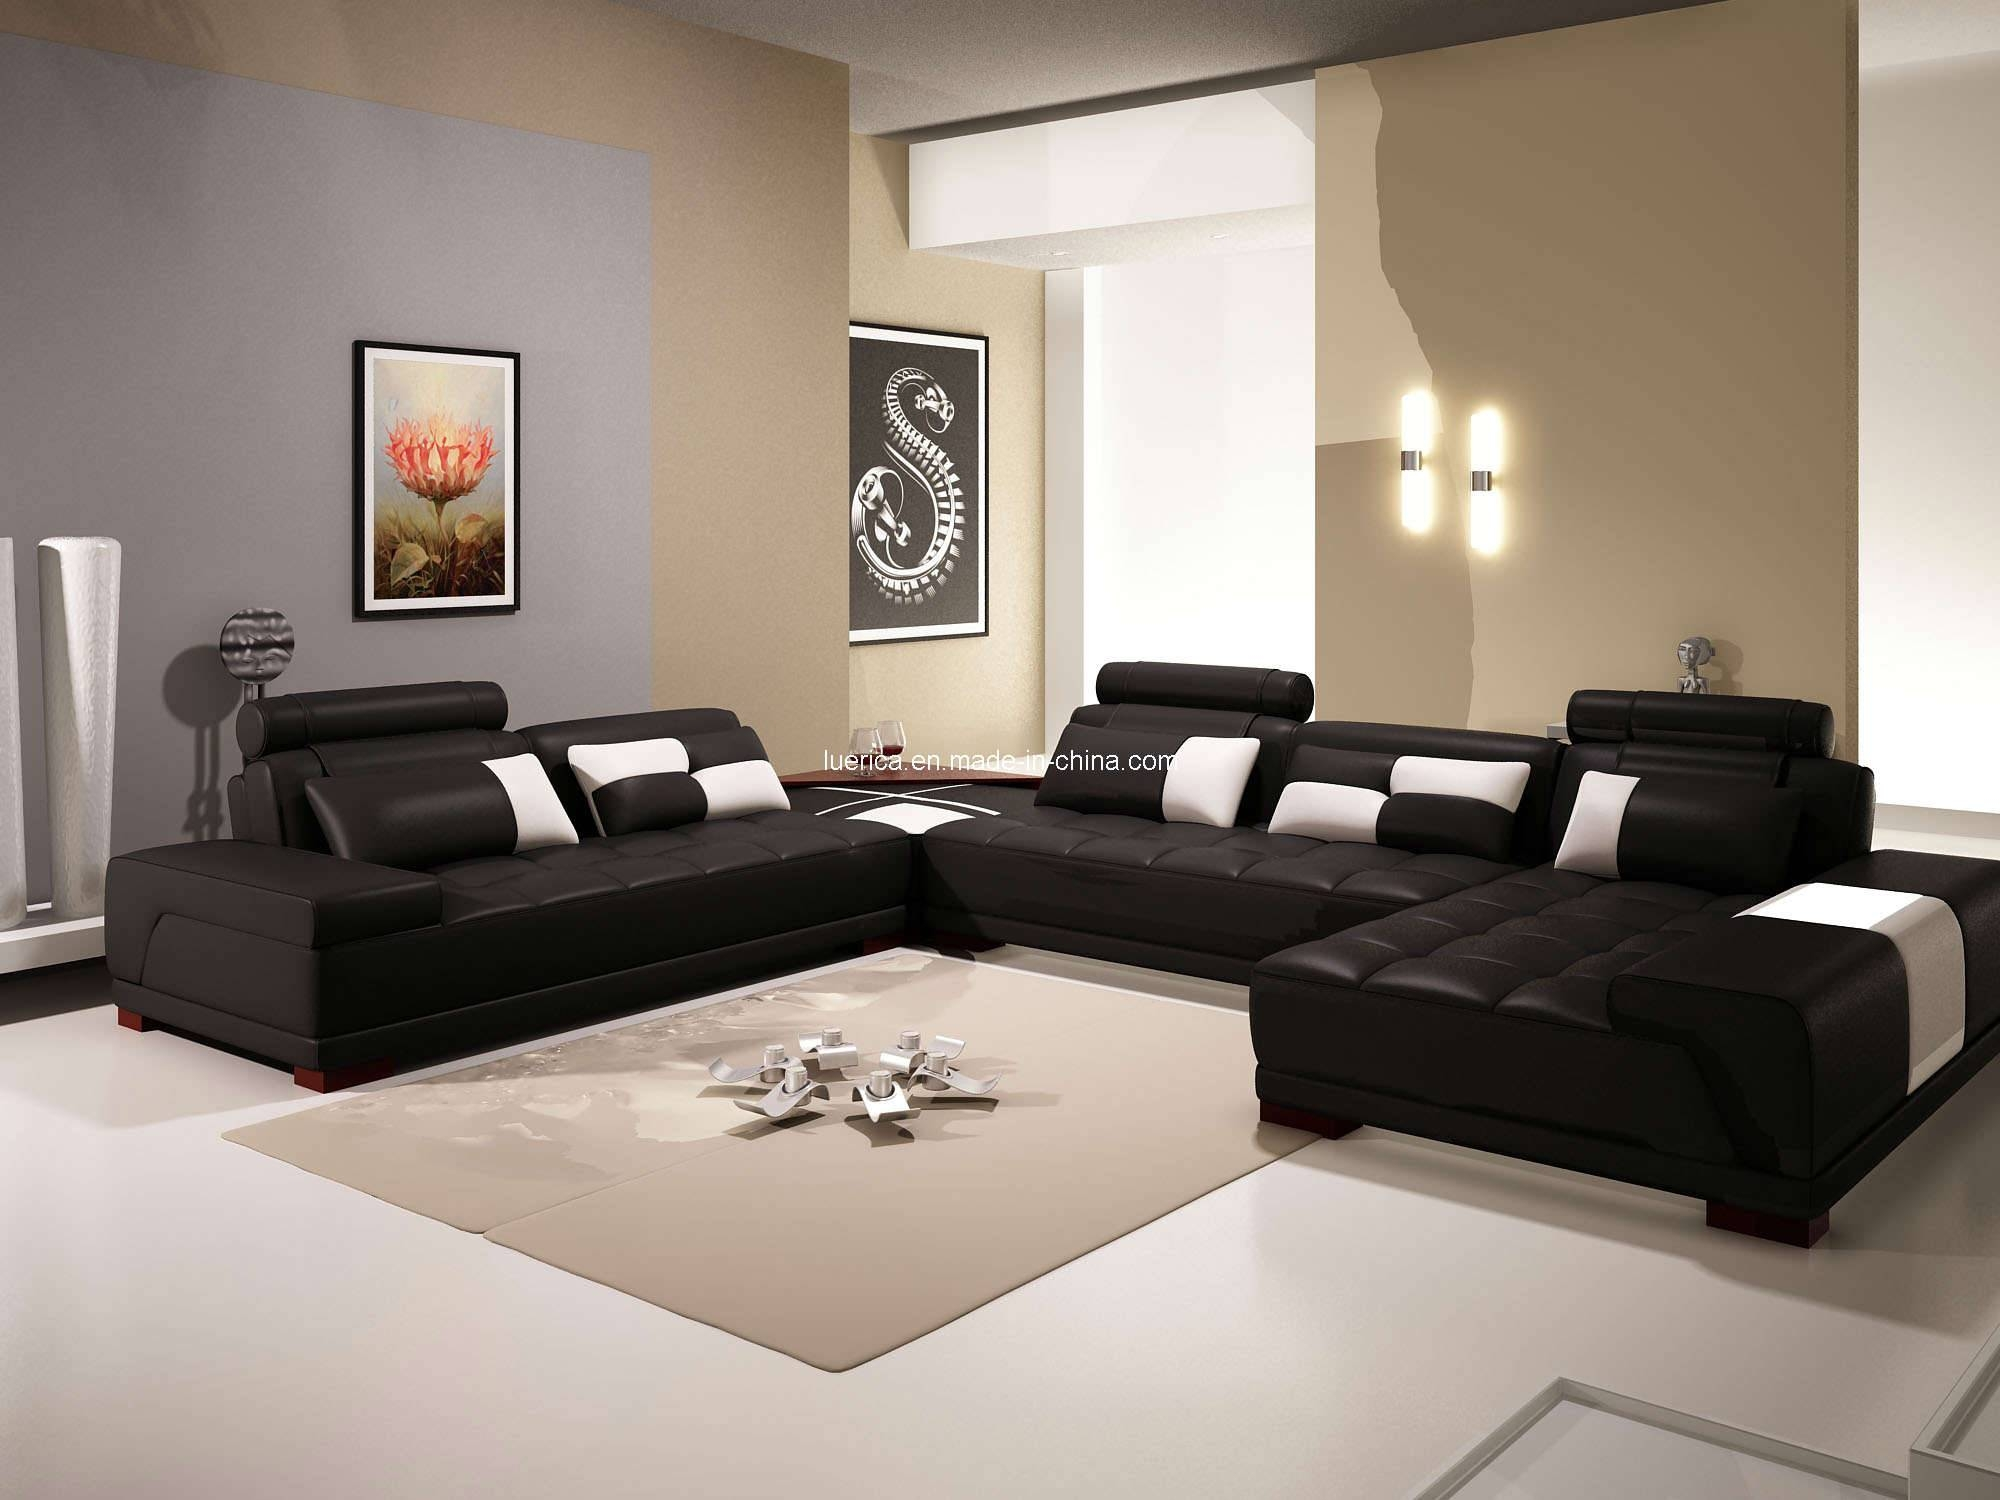 Furniture: Beautiful Sectional Sofas Cheap For Living Room in Black And White Sectional Sofa (Image 14 of 30)